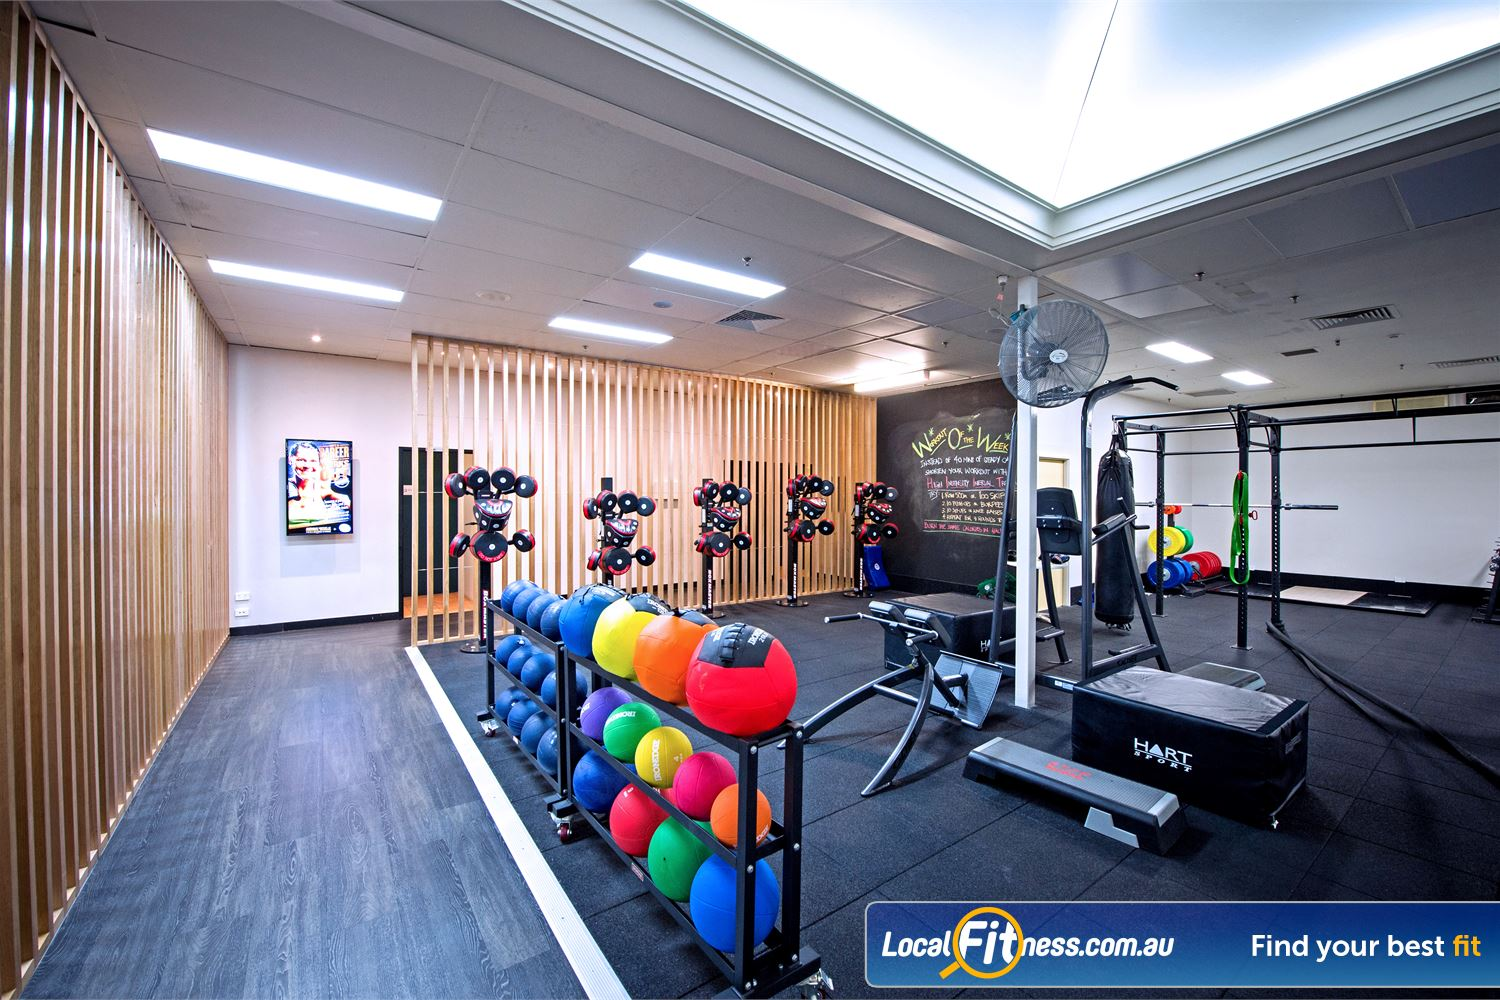 Goodlife Health Clubs Near Peppermint Grove The fully equipped Goodlife Cottesloe functional training area.